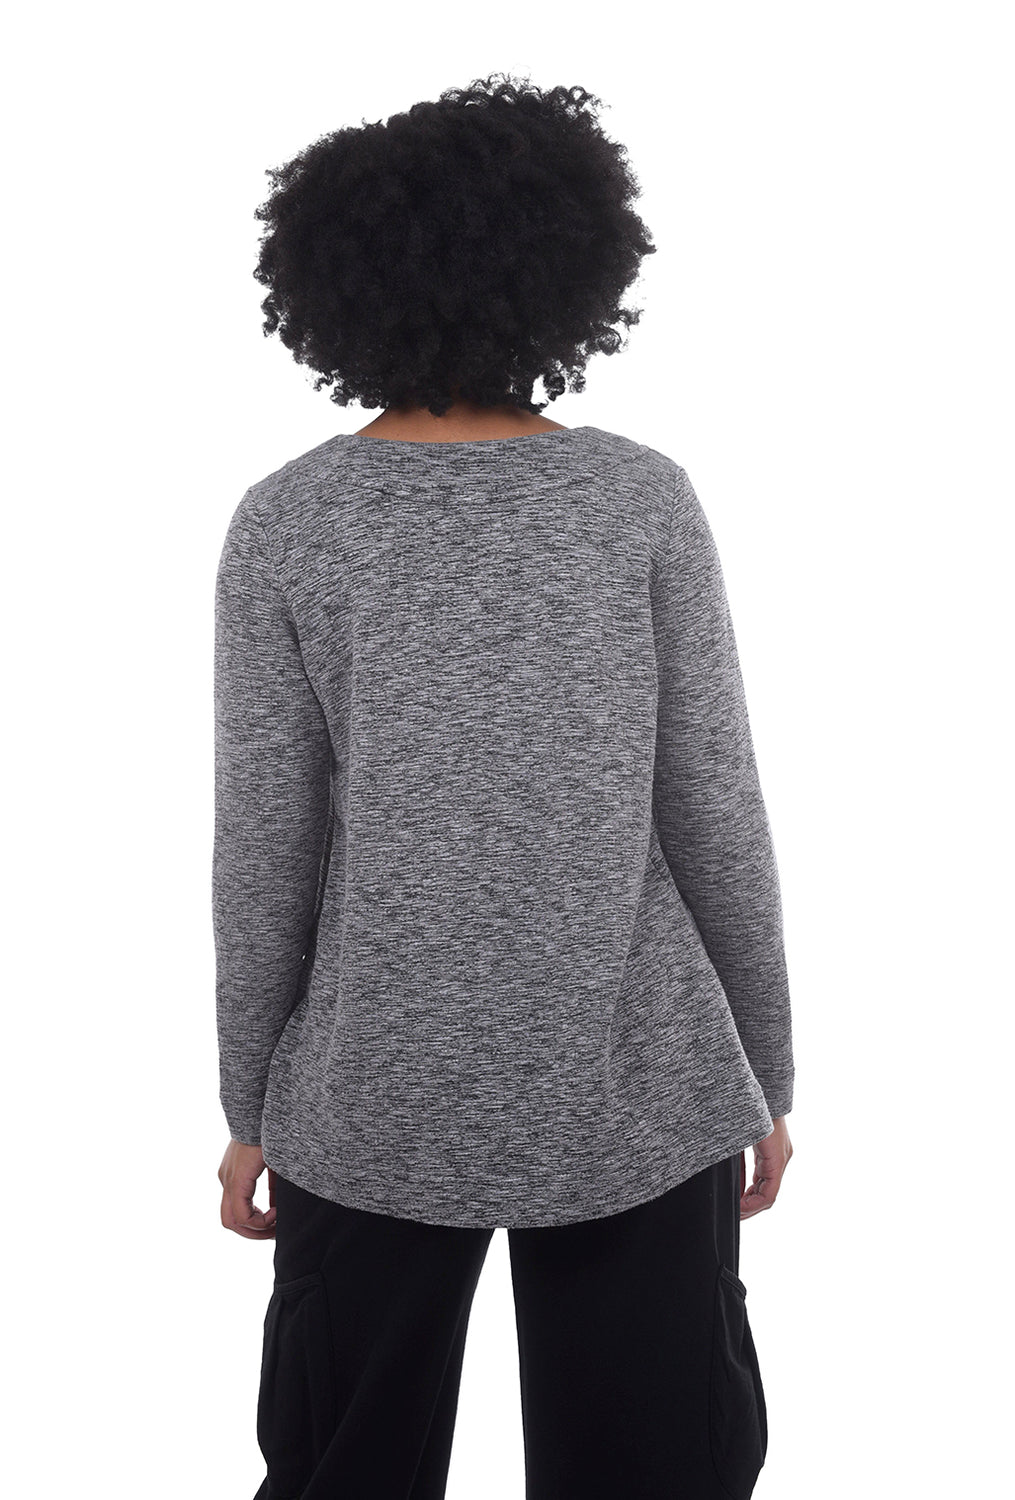 Crimped Pocket Top, Cathedral Gray